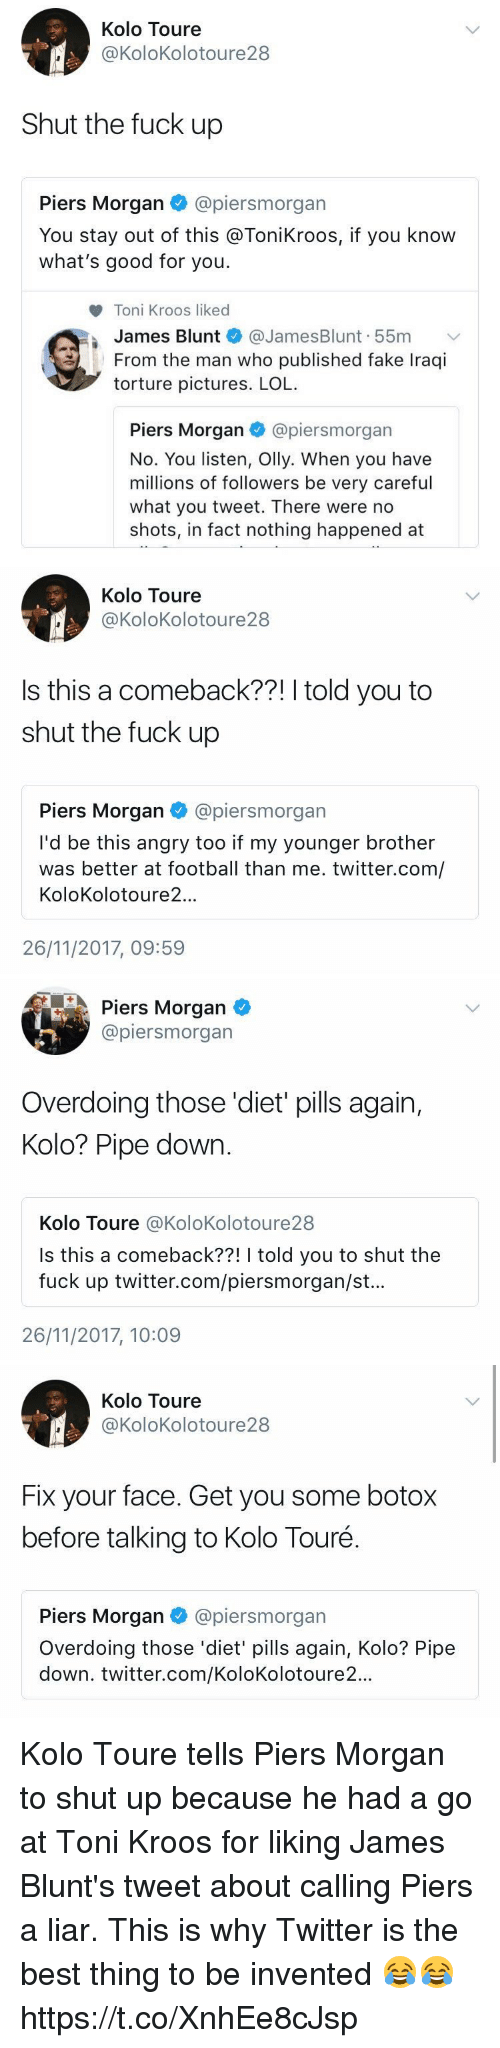 Blunts, Fake, and Football: Kolo Toure  @KoloKolotoure28  Shut the fuck up  Piers Morgan @piersmorgan  You stay out of this @ToniKroos, if you know  what's good for you.  Toni Kroos liked  James Blunt @JamesBlunt. 55m ﹀  From the man who published fake Iraqi  torture pictures. LOL  Piers Morgan·@pers m organ  No. You listen, Olly. When you have  millions of followers be very careful  what you tweet. There were no  shots, in fact nothing happened at   Kolo Toure  @KoloKolotoure 28  Is this a comeback??! I told you to  shut the fuck up  Piers Morgan @piersmorgan  I'd be this angry too if my younger brother  was better at football than me. twitter.com/  KoloKolotoure2..  26/11/2017, 09:59   Piers Morgan  @piersmorgan  Overdoing those 'diet pills again,  Kolo? Pipe down  Kolo Toure @KoloKolotoure28  Is this a comeback??! I told you to shut the  fuck up twitter.com/piersmorgan/st..  26/11/2017, 10:09   Kolo Toure  @KoloKolotoure28  Fix your face. Get you some botox  before talking to Kolo Touré.  Piers Morgan@piersmorgan  Overdoing those 'diet' pills again, Kolo? Pipe  down. twitter.com/KoloKolotoure2... Kolo Toure tells Piers Morgan to shut up because he had a go at Toni Kroos for liking James Blunt's tweet about calling Piers a liar. This is why Twitter is the best thing to be invented 😂😂 https://t.co/XnhEe8cJsp